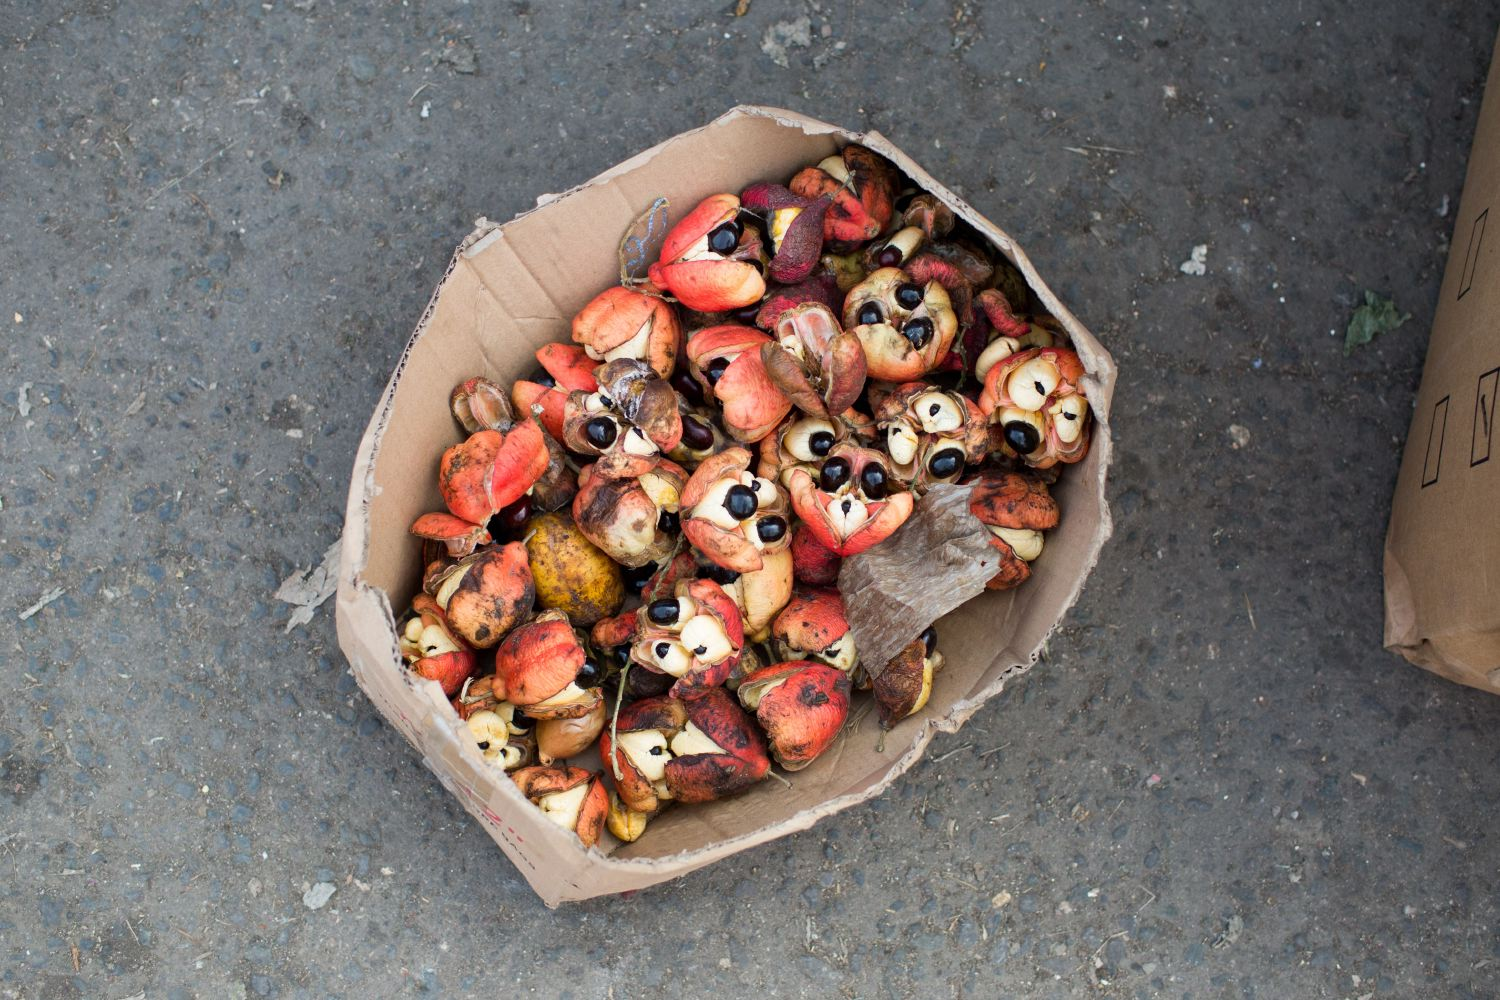 Above is ackee fruit, used to make the national dish ackee with cod. Though you have to be careful with ackee as if eaten when unripe, it  can   be toxic and deadly. When ripe, the yellow arilli is the only portion that can be eaten and makes a delicious meal.